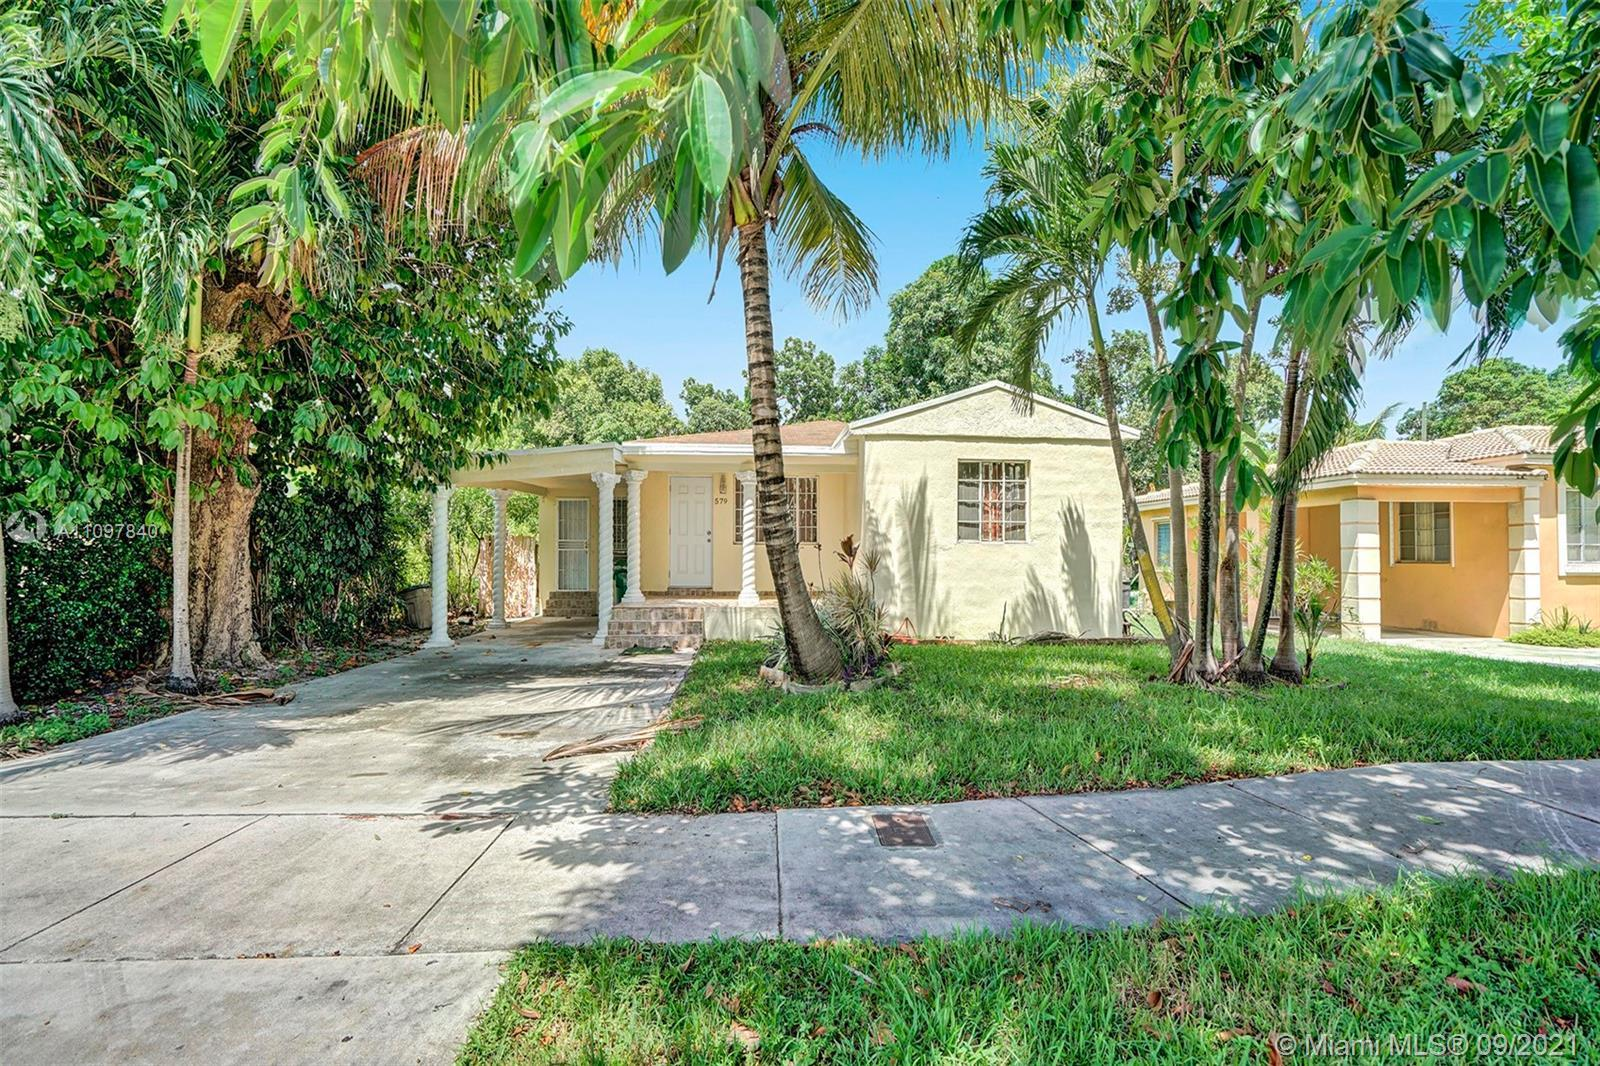 West Miami Shores Diamond in the Rough! Beautifully remodeled waiting for your finishing touches. Ne